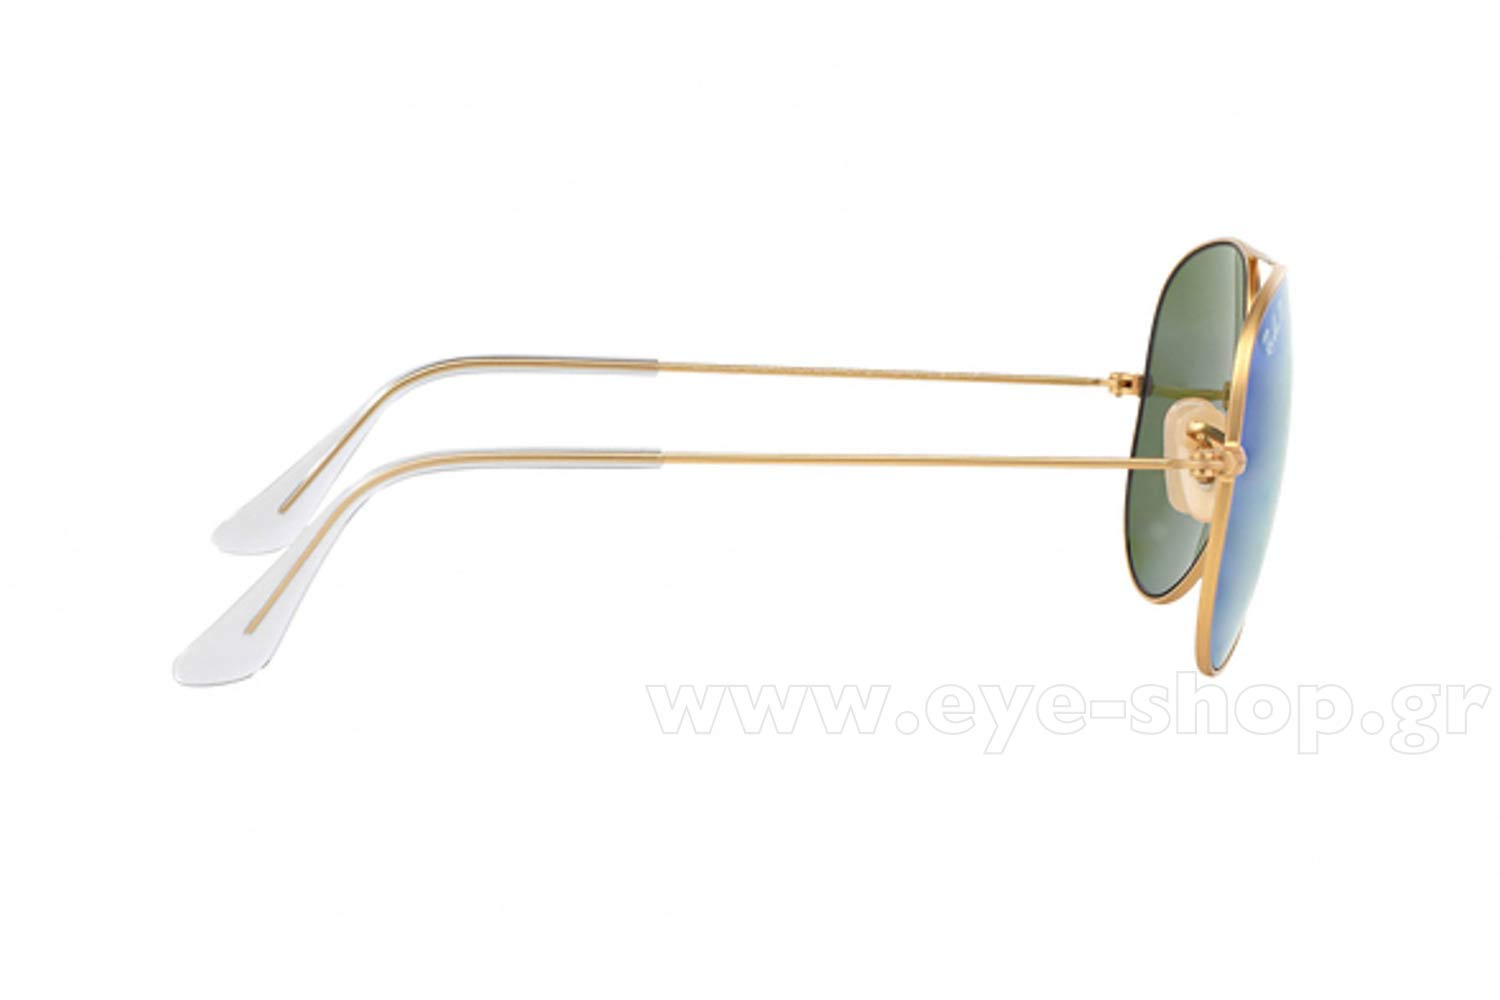 Rayban μοντέλο 3025 Aviator στο χρώμα 112/4L Polarized Mirror Krystal